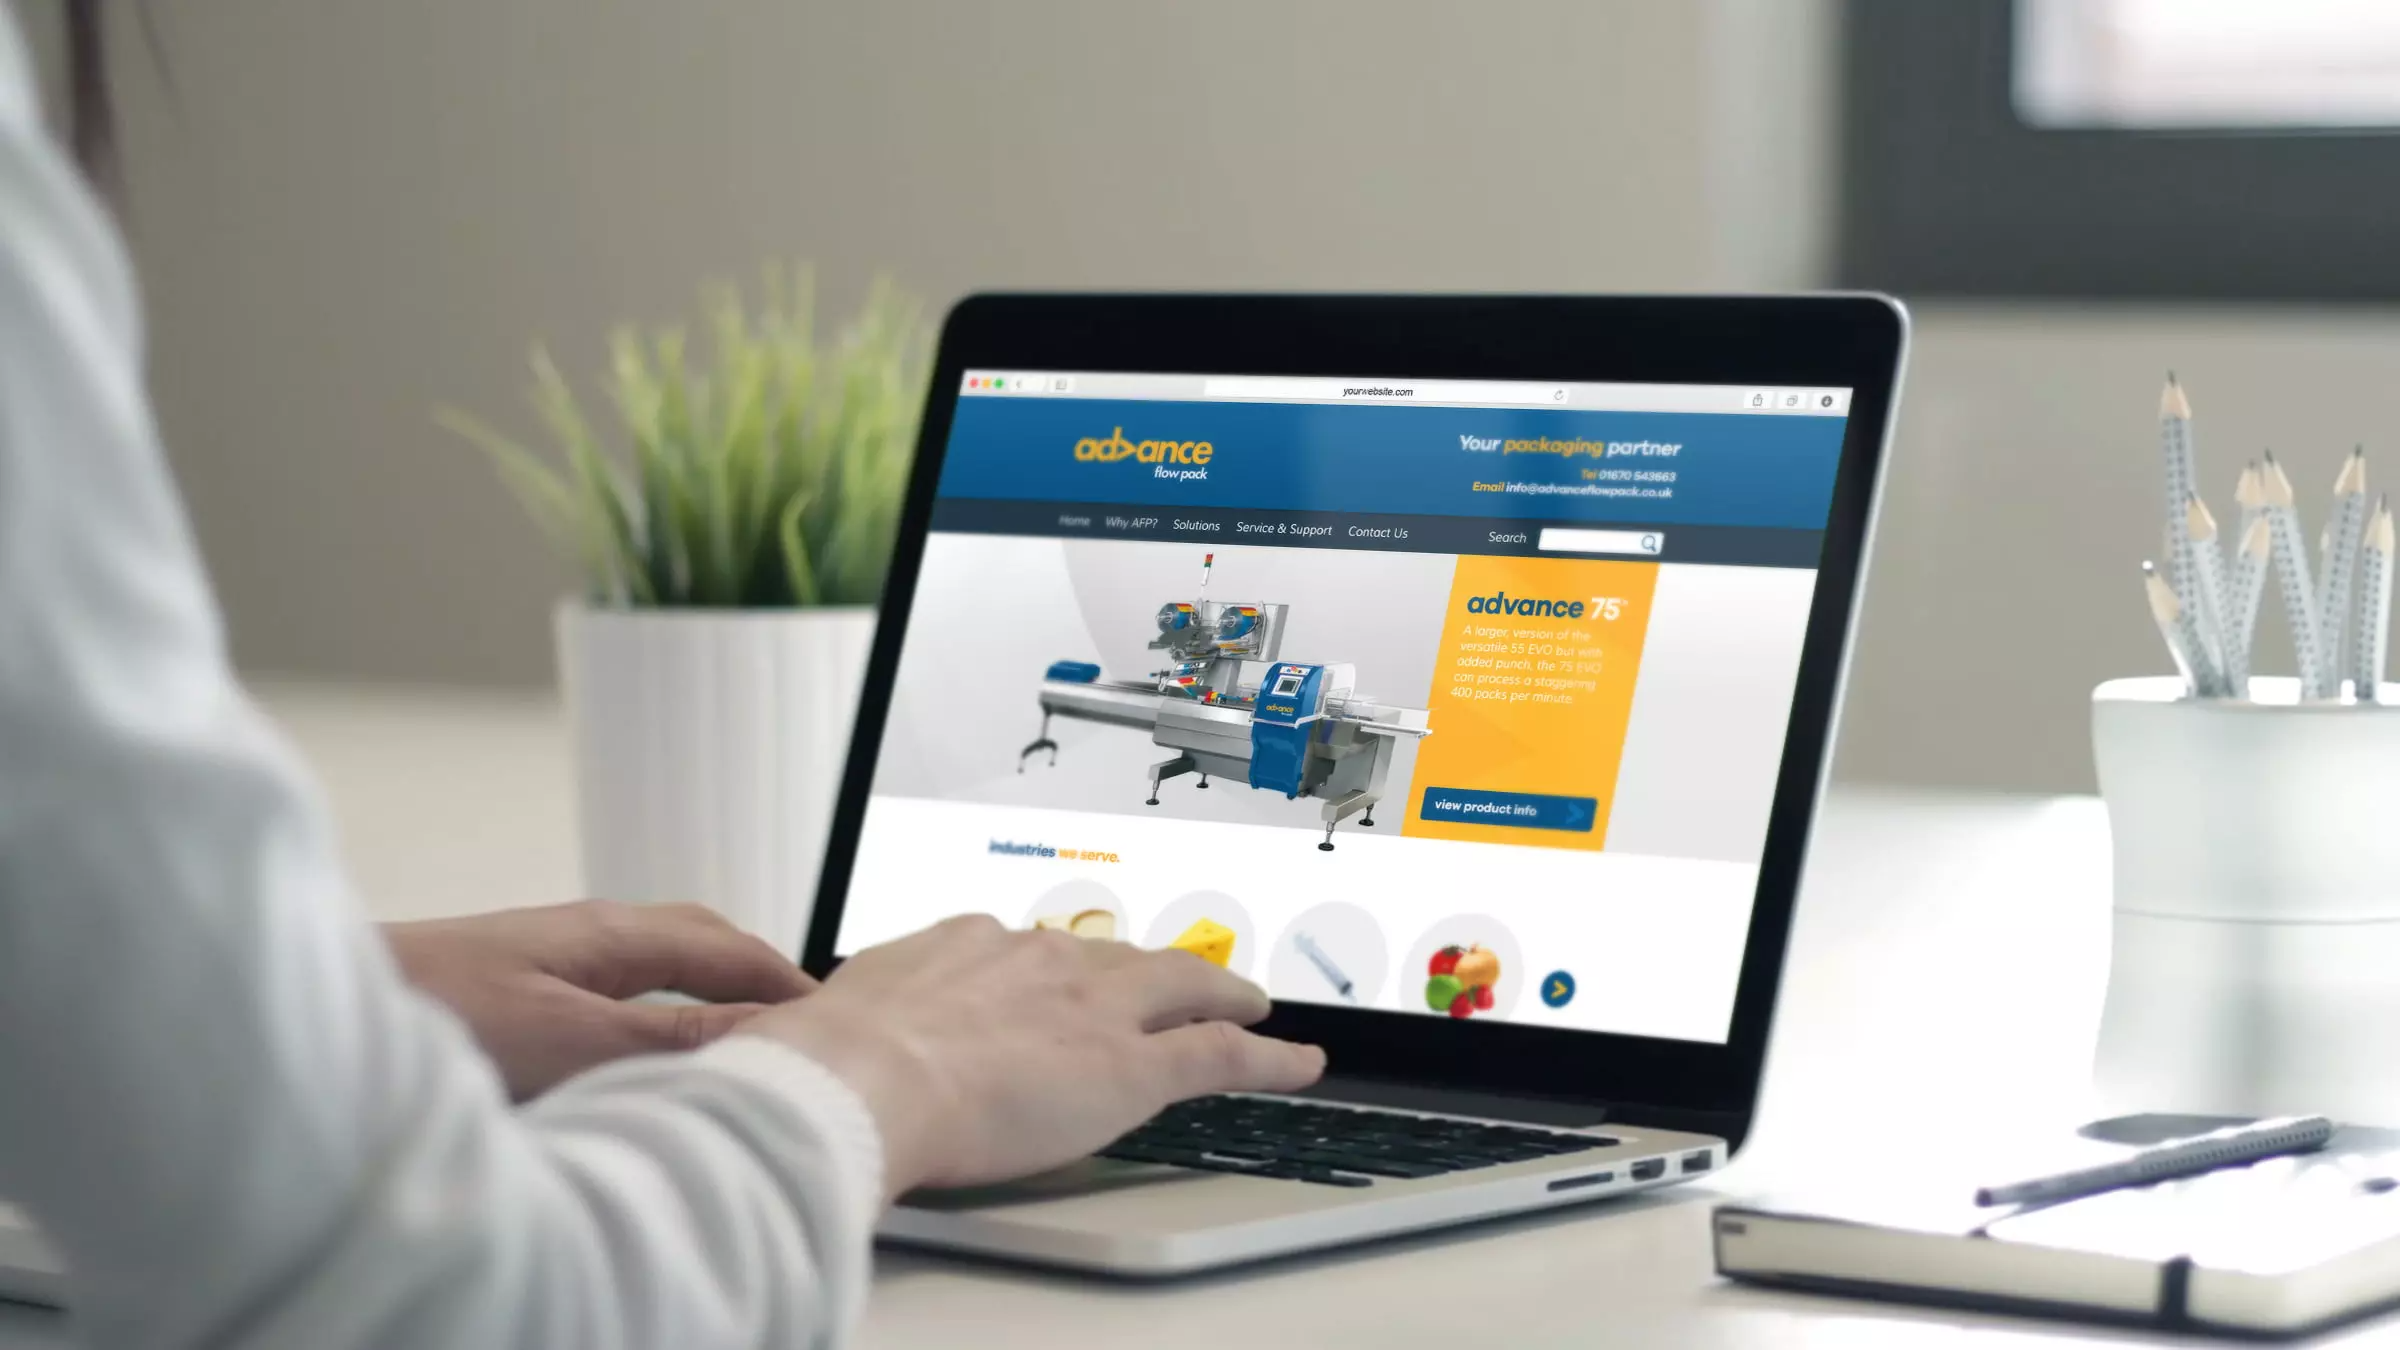 Advance Flow Pack website being viewed by a person on a laptop